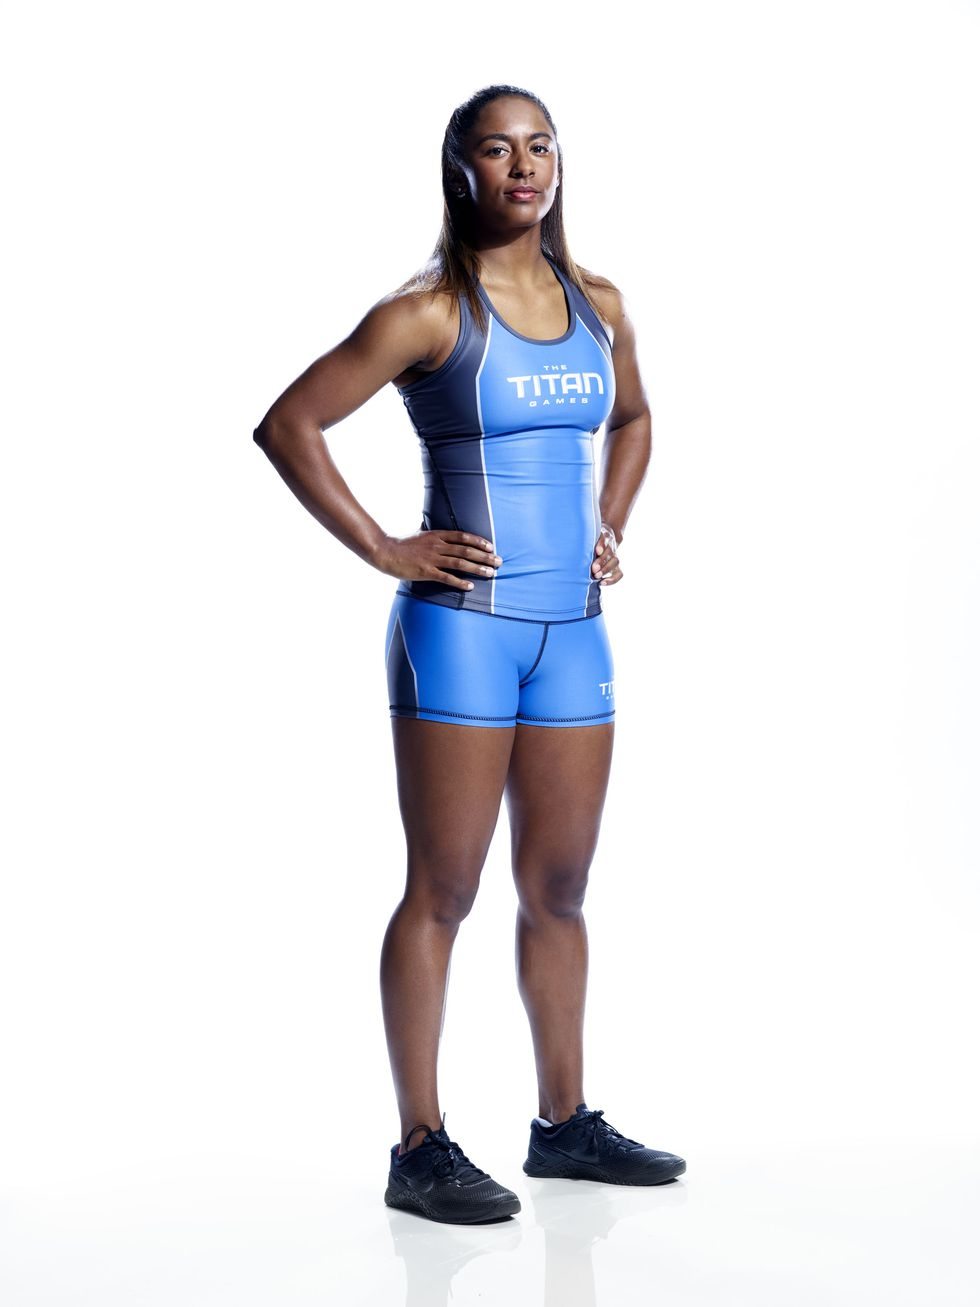 Jasmin Guinn - Instagram: @jasminguinnTwitter: @JasminKGuinnJasmin is both a talented artist and elite athlete. She is a former dual sport NCAA athlete in basketball and track and is here to compete for her grandmother, her greatest inspiration in life and biggest supporter.